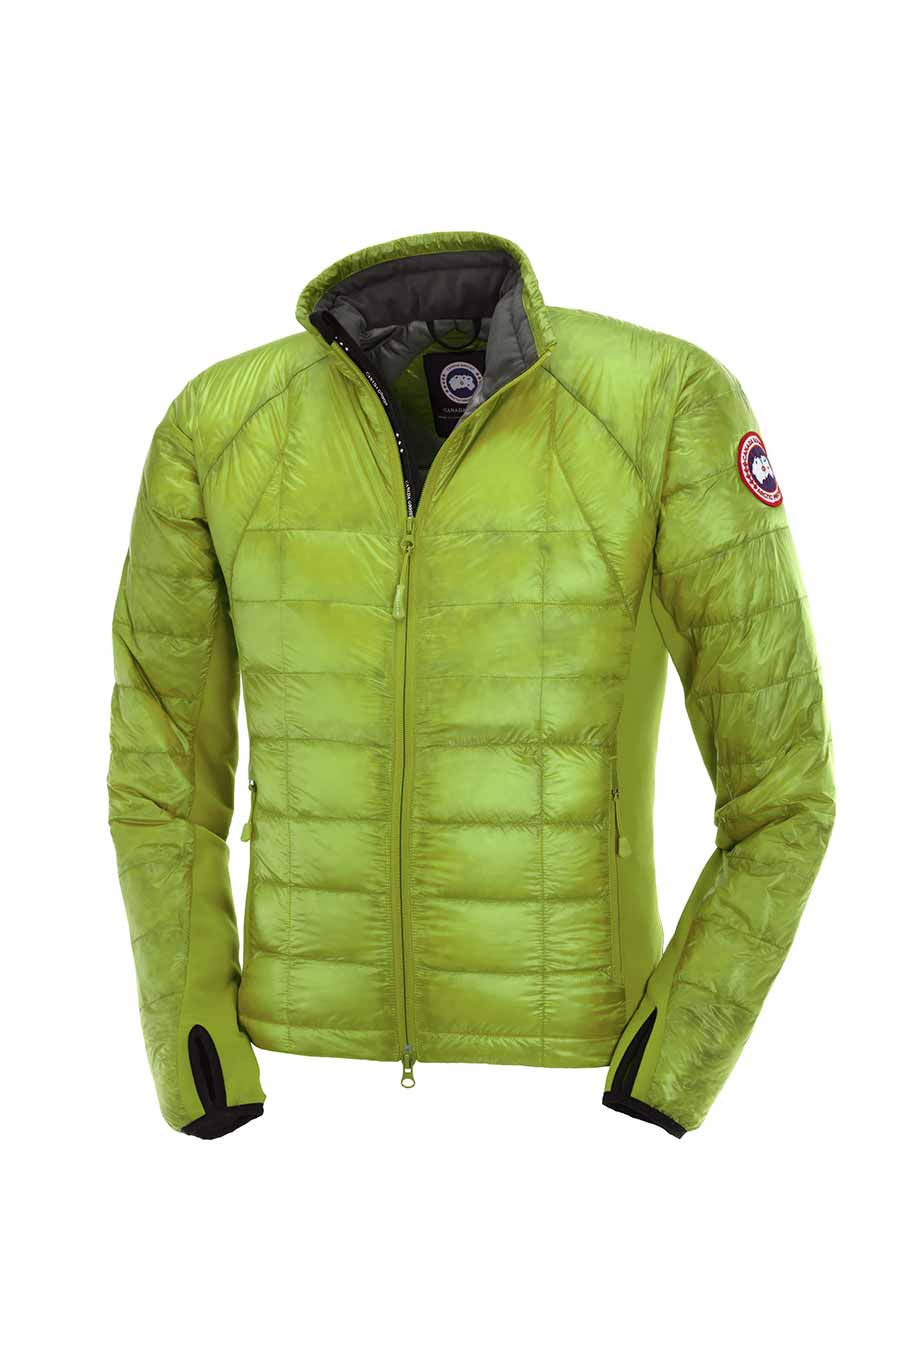 Canada Goose vest online authentic - Canada Goose Hybridge Lite and Timber Shell Review �C T Squared ...